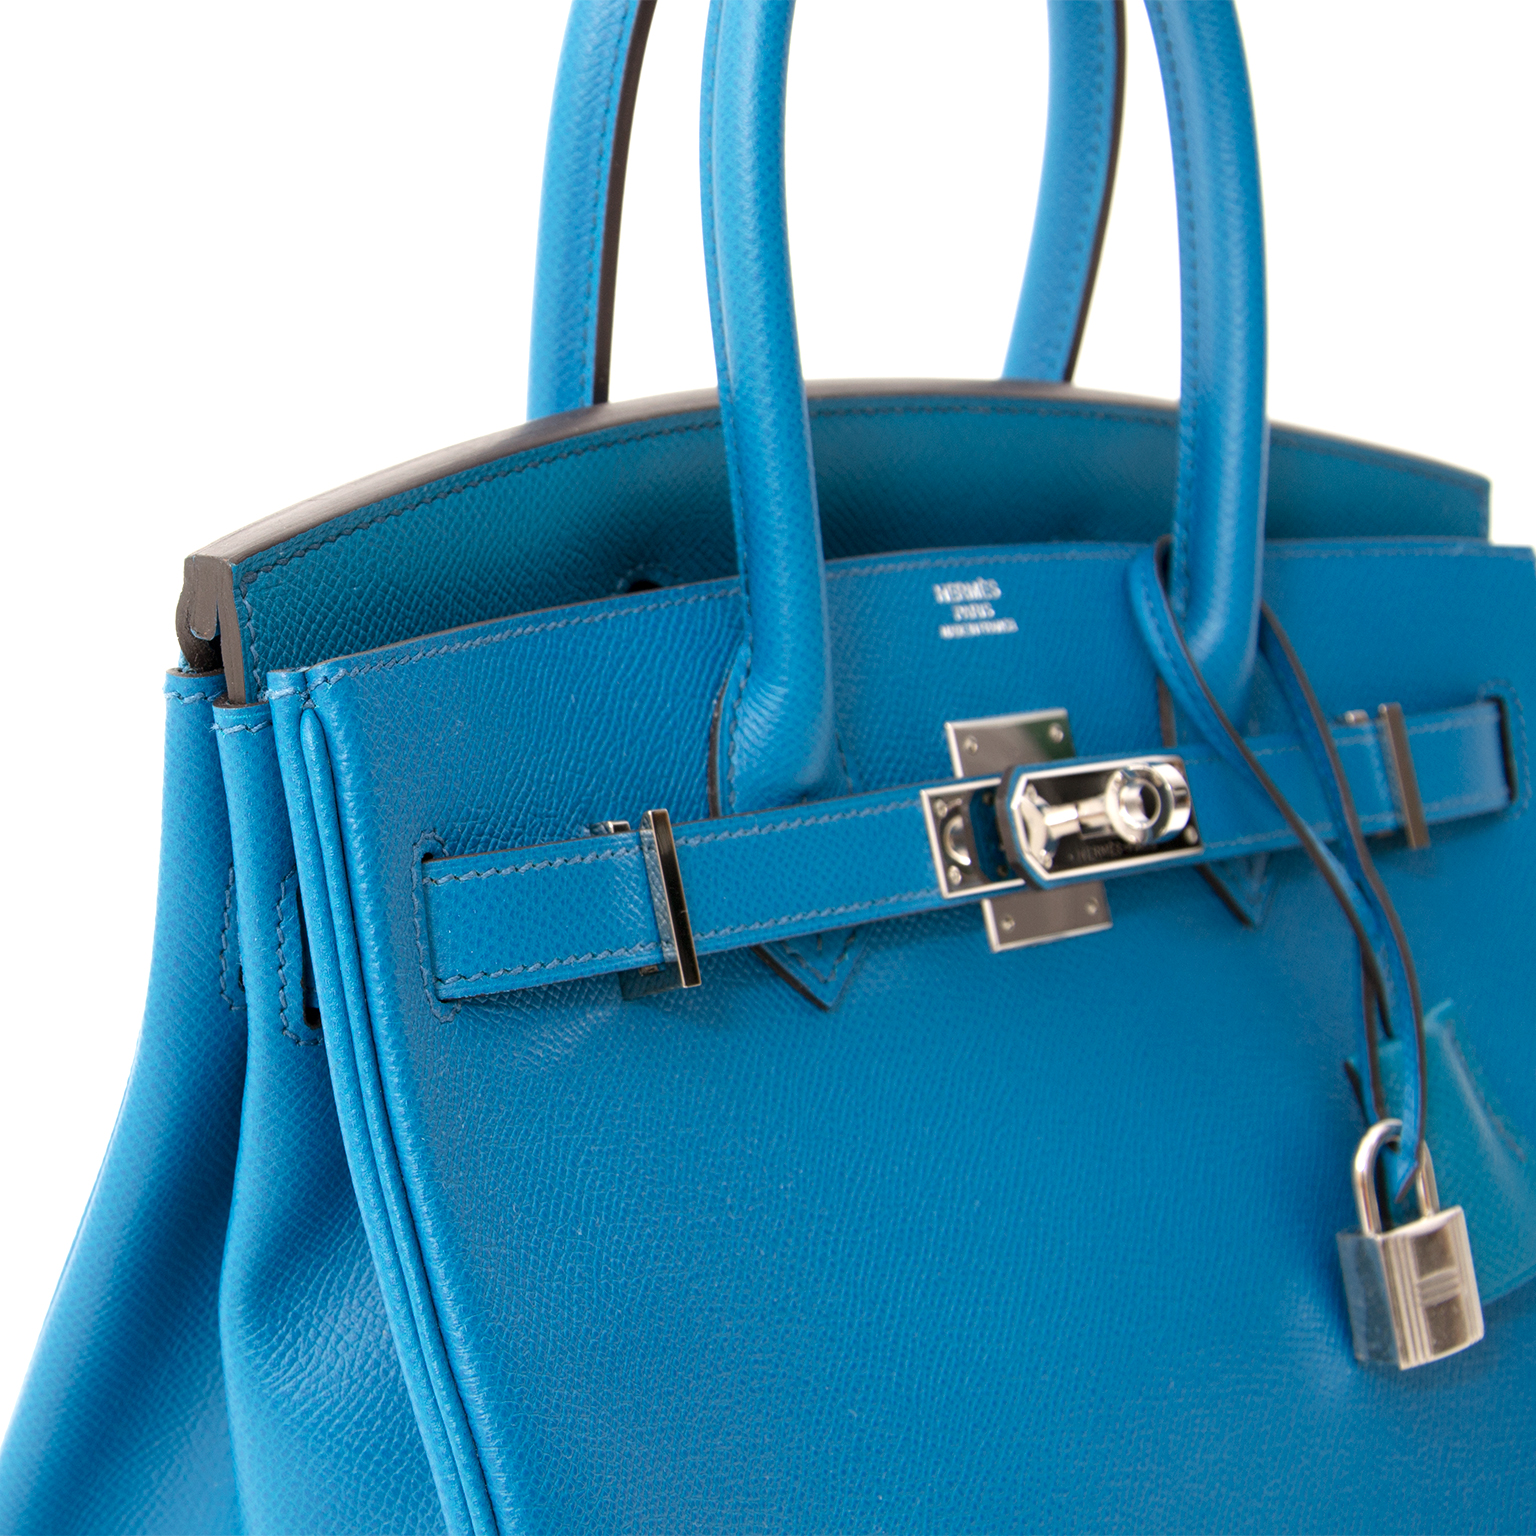 Buy authentic secondhand Hermès bags Hermès Birkin 30cm Epsom Blue Izmir  koop veilig online tweedehands 833d37a9c3cd2